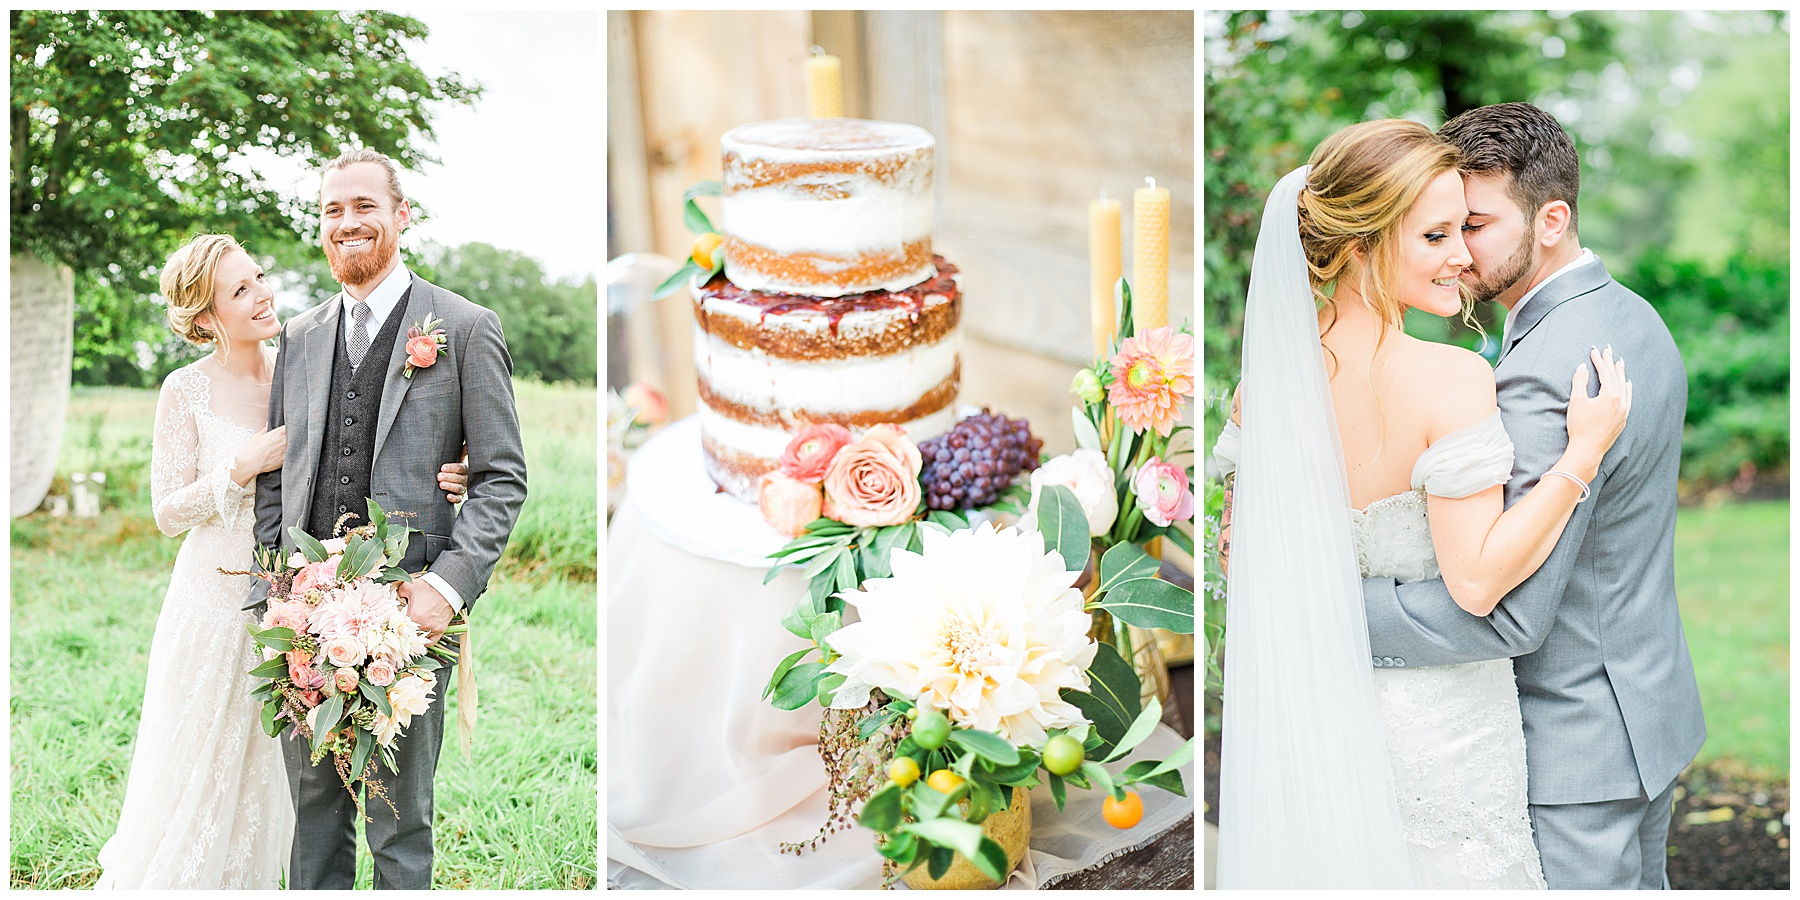 Whimsical, Boho, light and airy wedding photographer